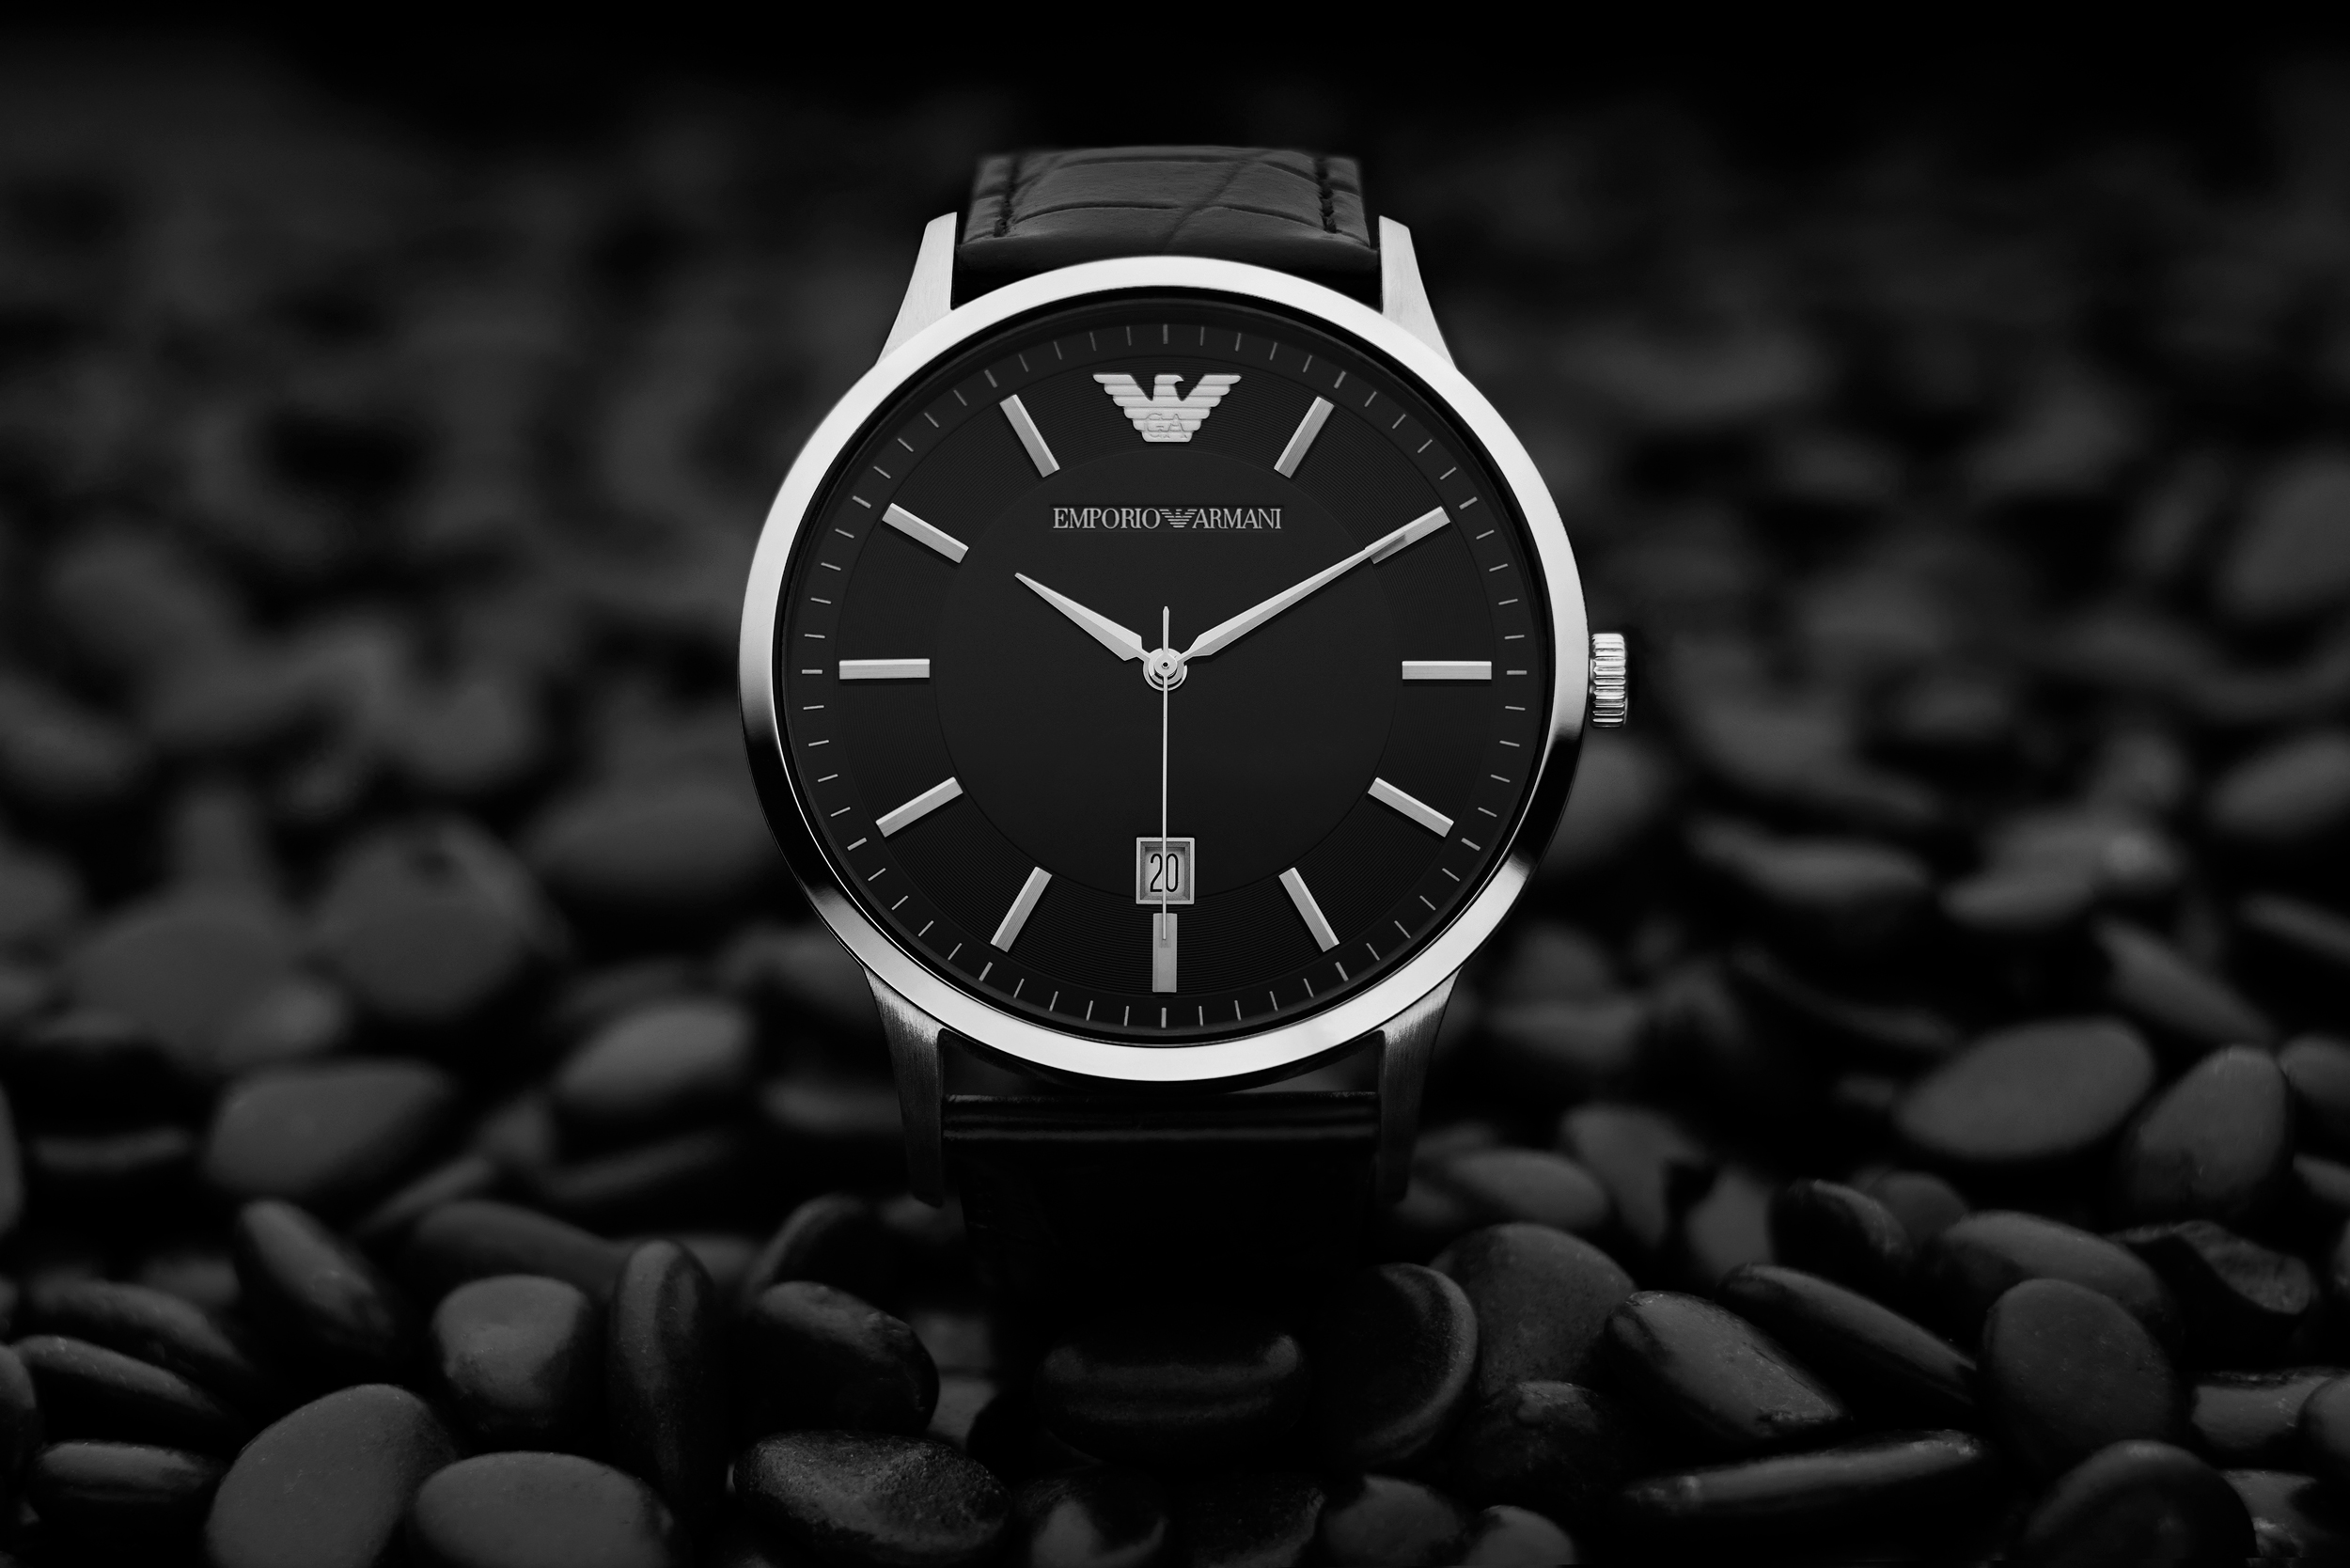 Emporio Armani wrist watch commercial at RDClicks Photography Kamloops